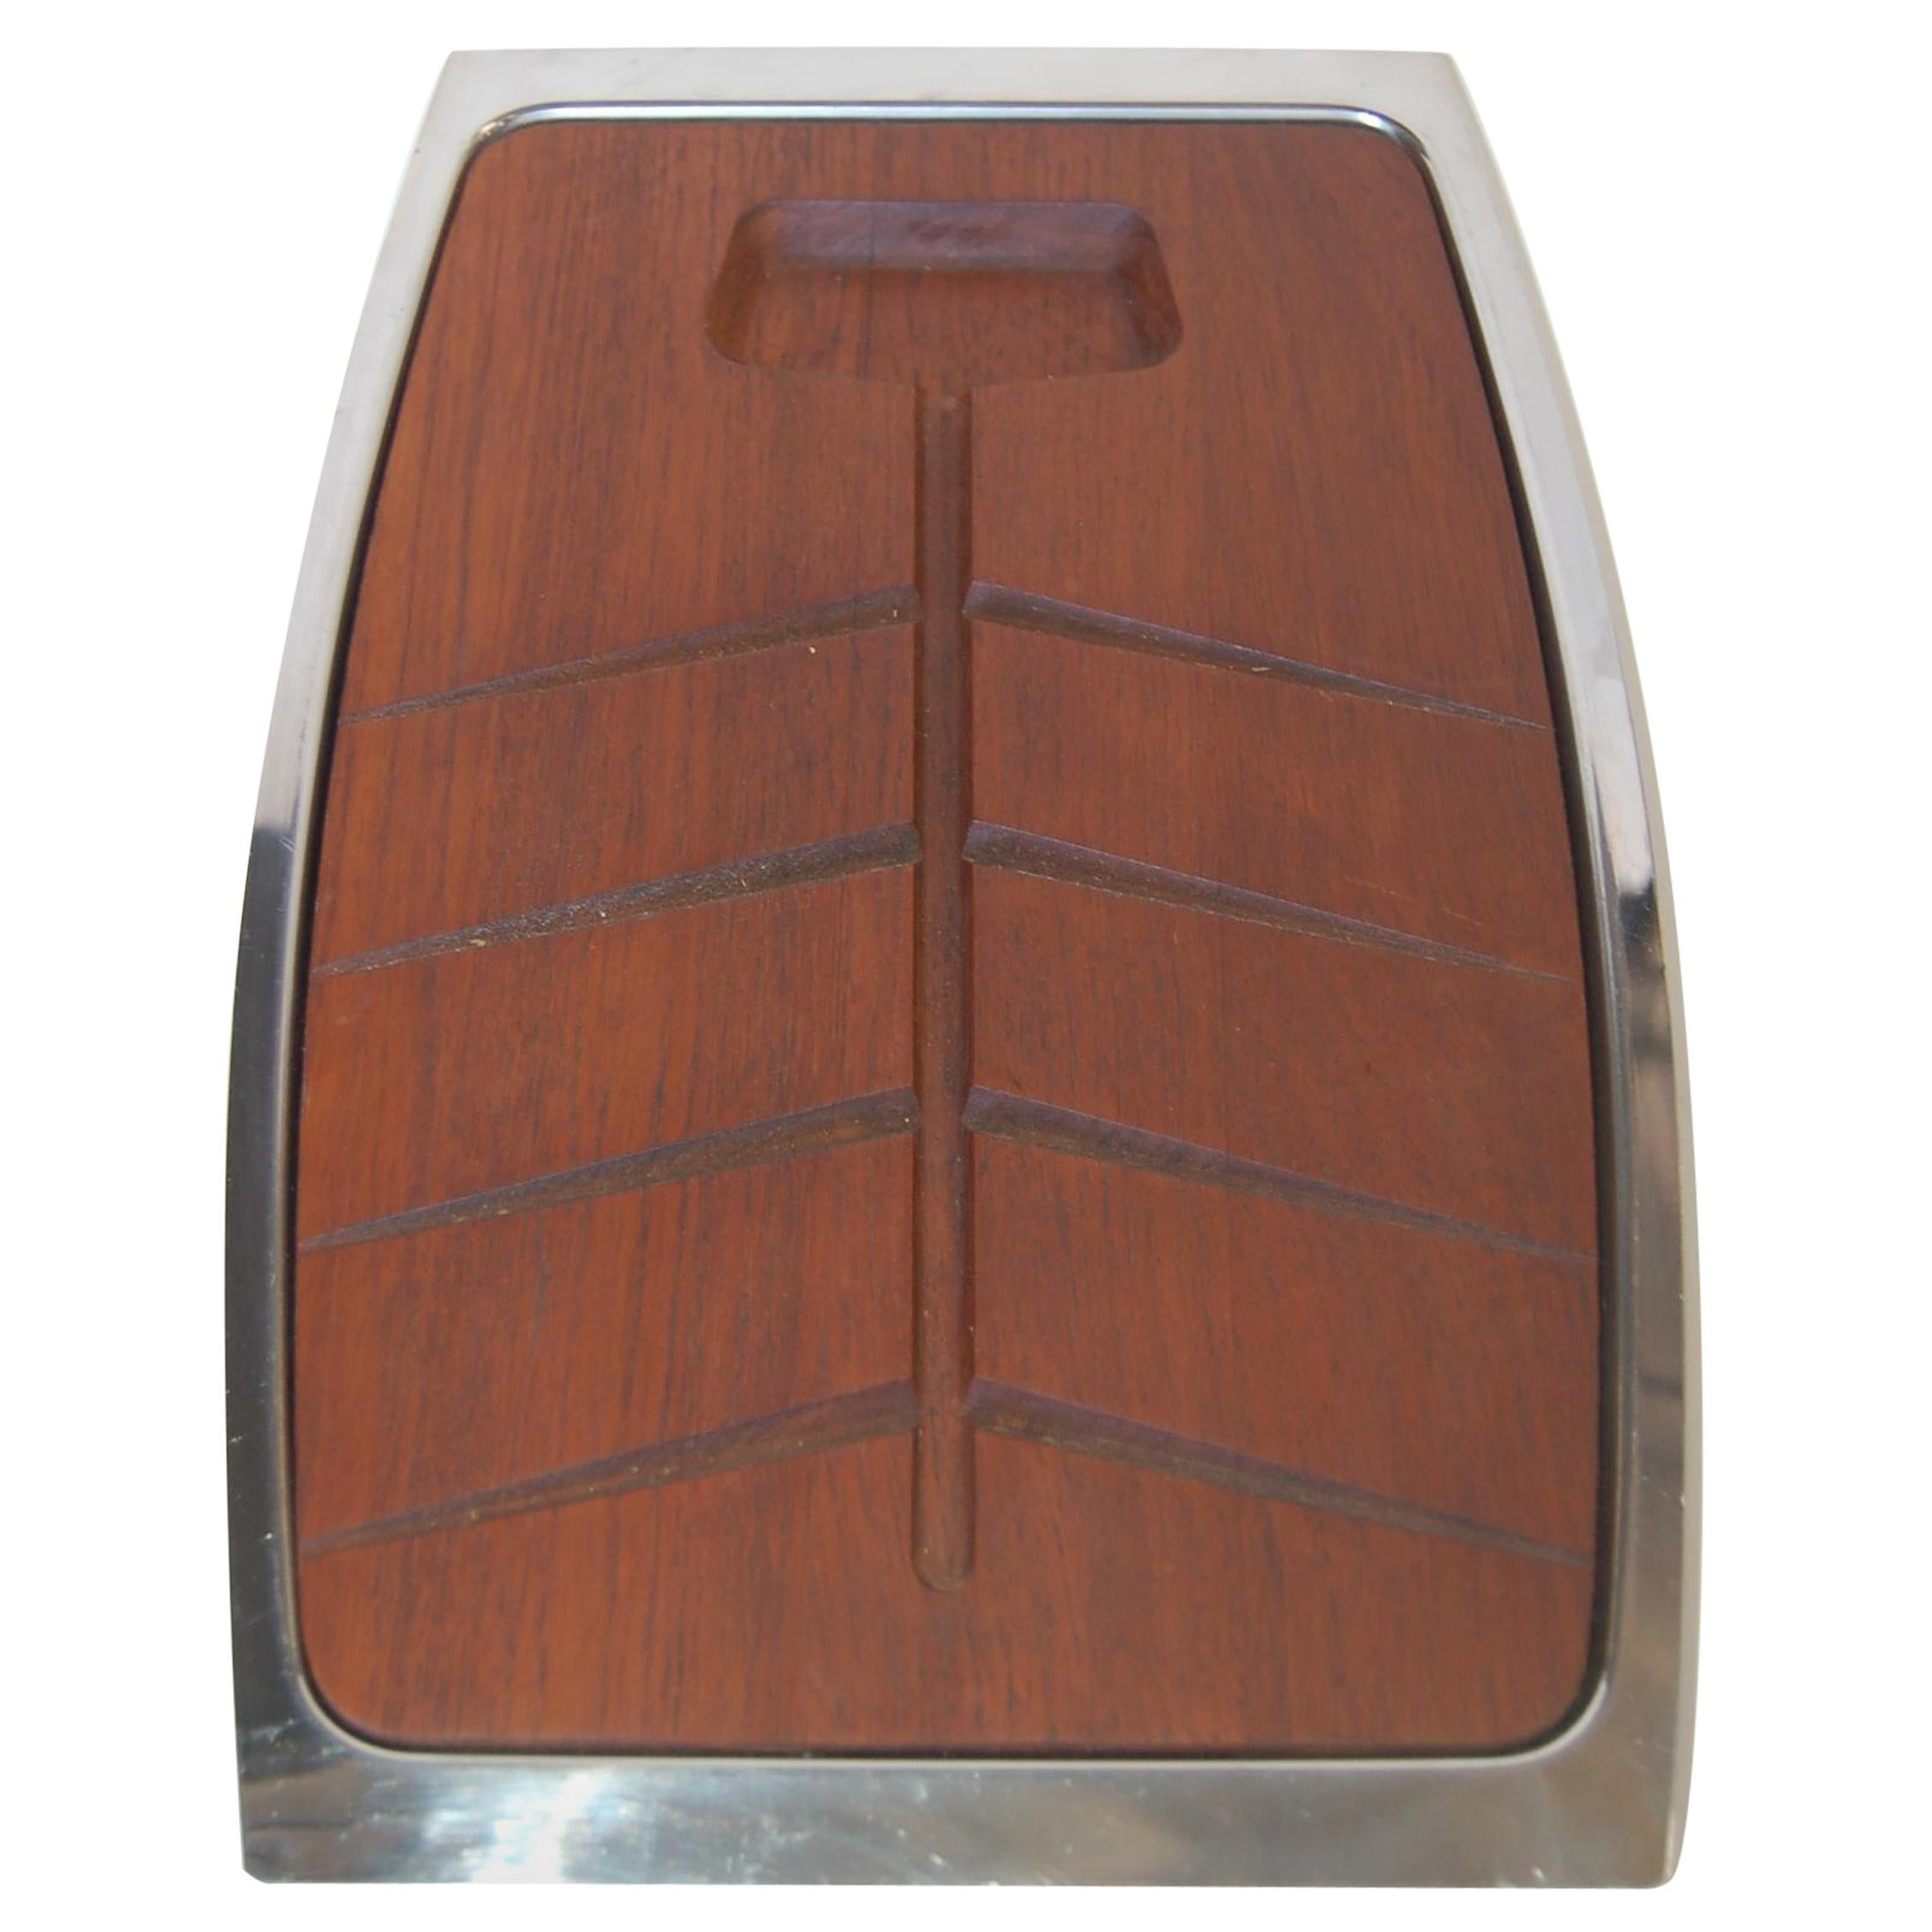 Danish Modern Two-Piece Teak Cutting Board with Stainless Steel Tray